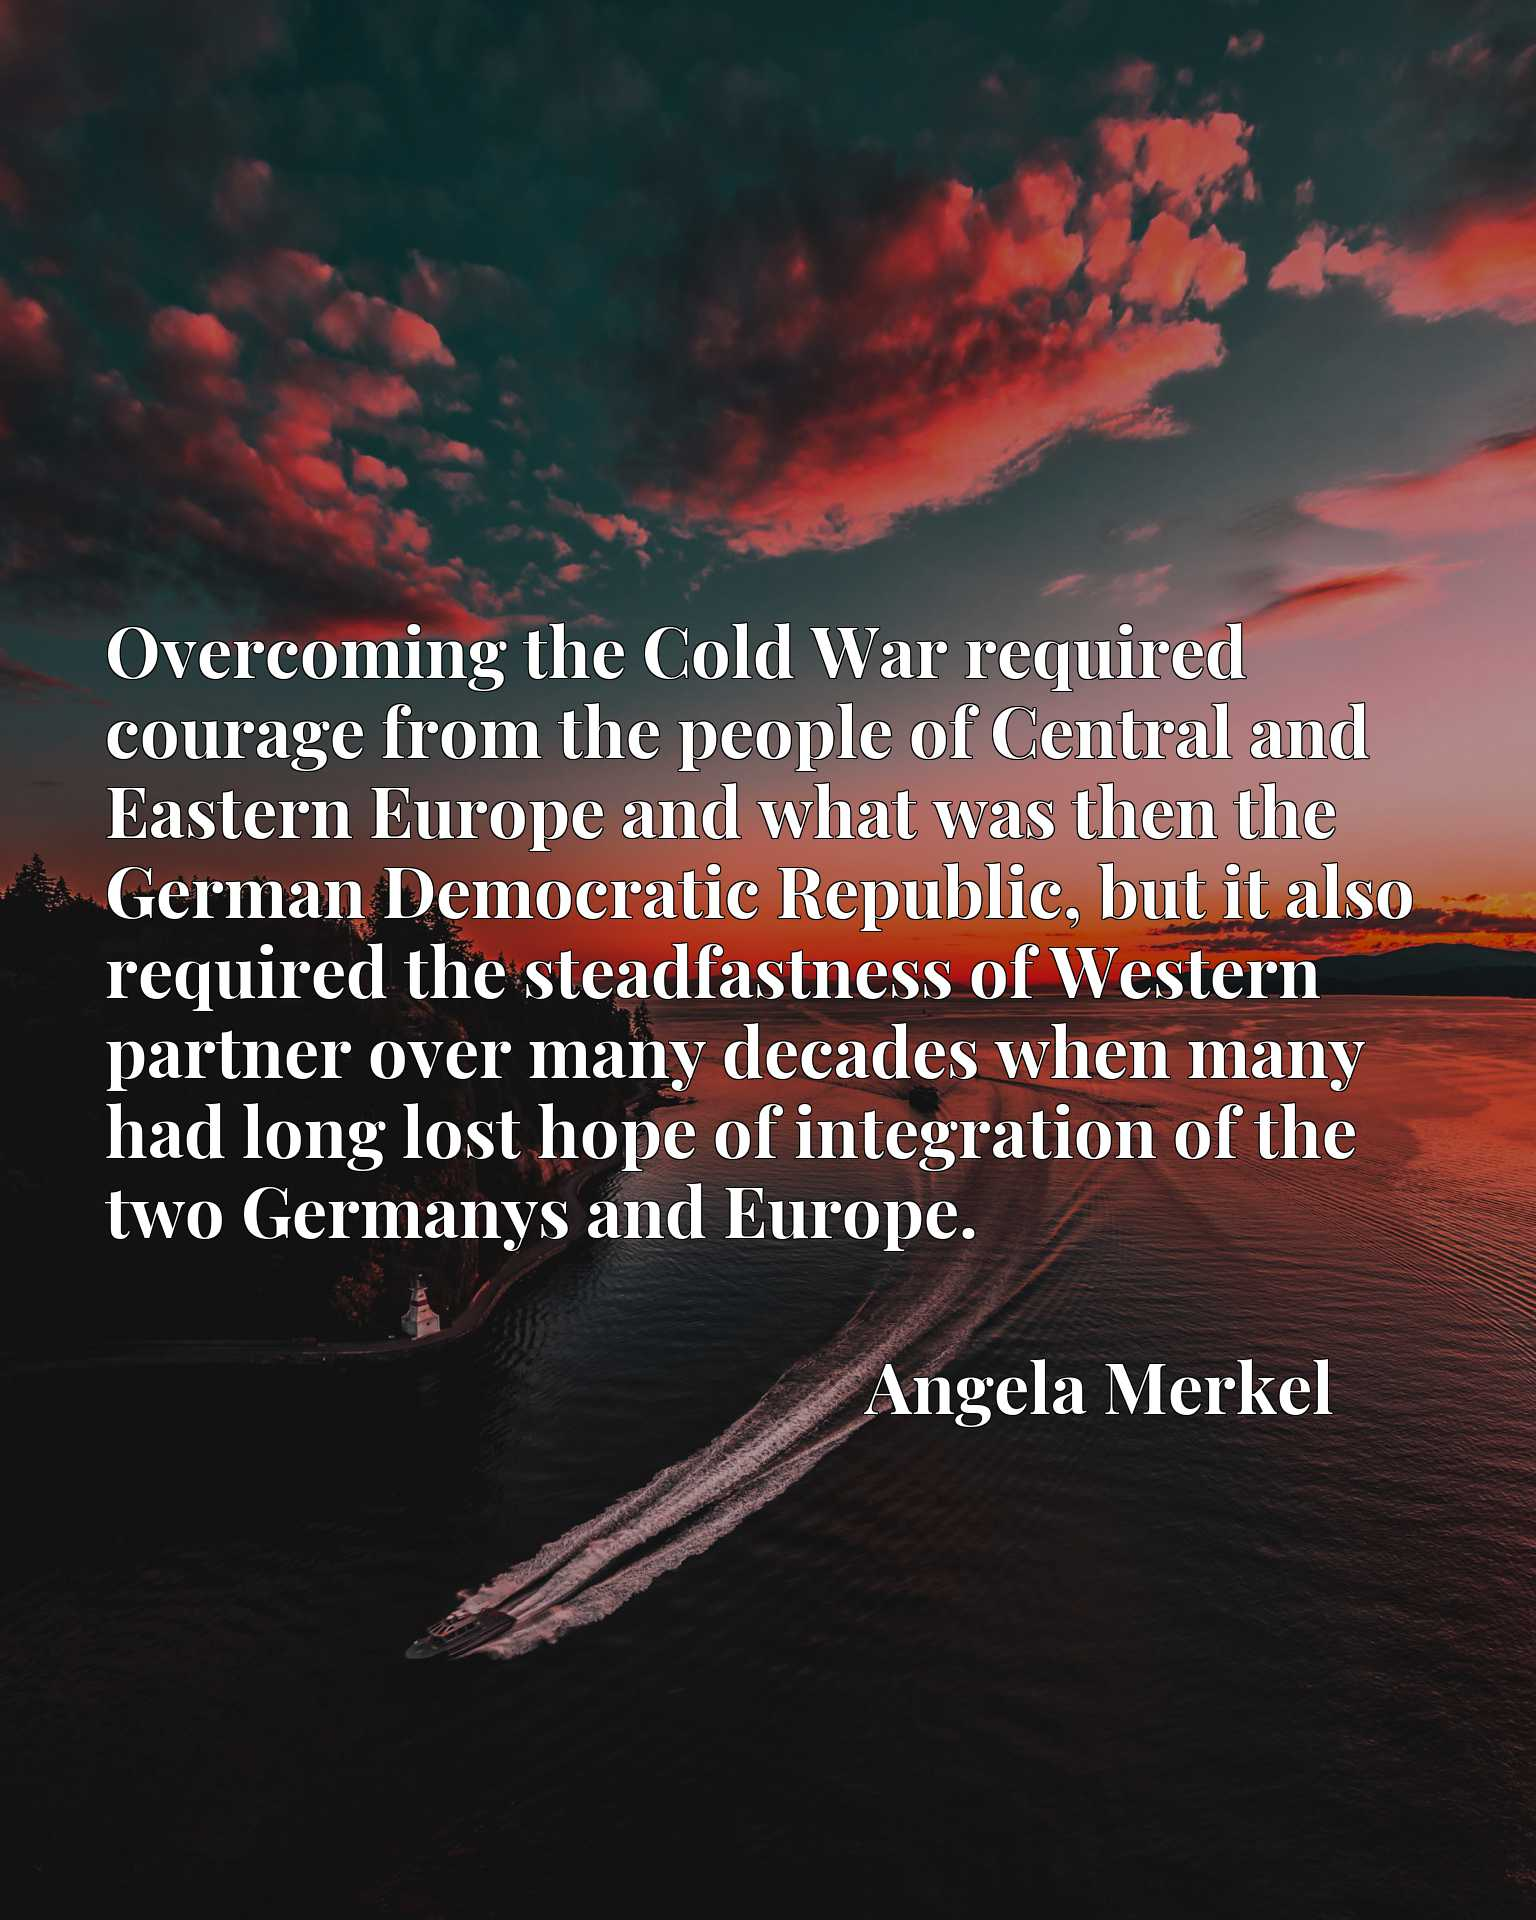 Overcoming the Cold War required courage from the people of Central and Eastern Europe and what was then the German Democratic Republic, but it also required the steadfastness of Western partner over many decades when many had long lost hope of integration of the two Germanys and Europe.